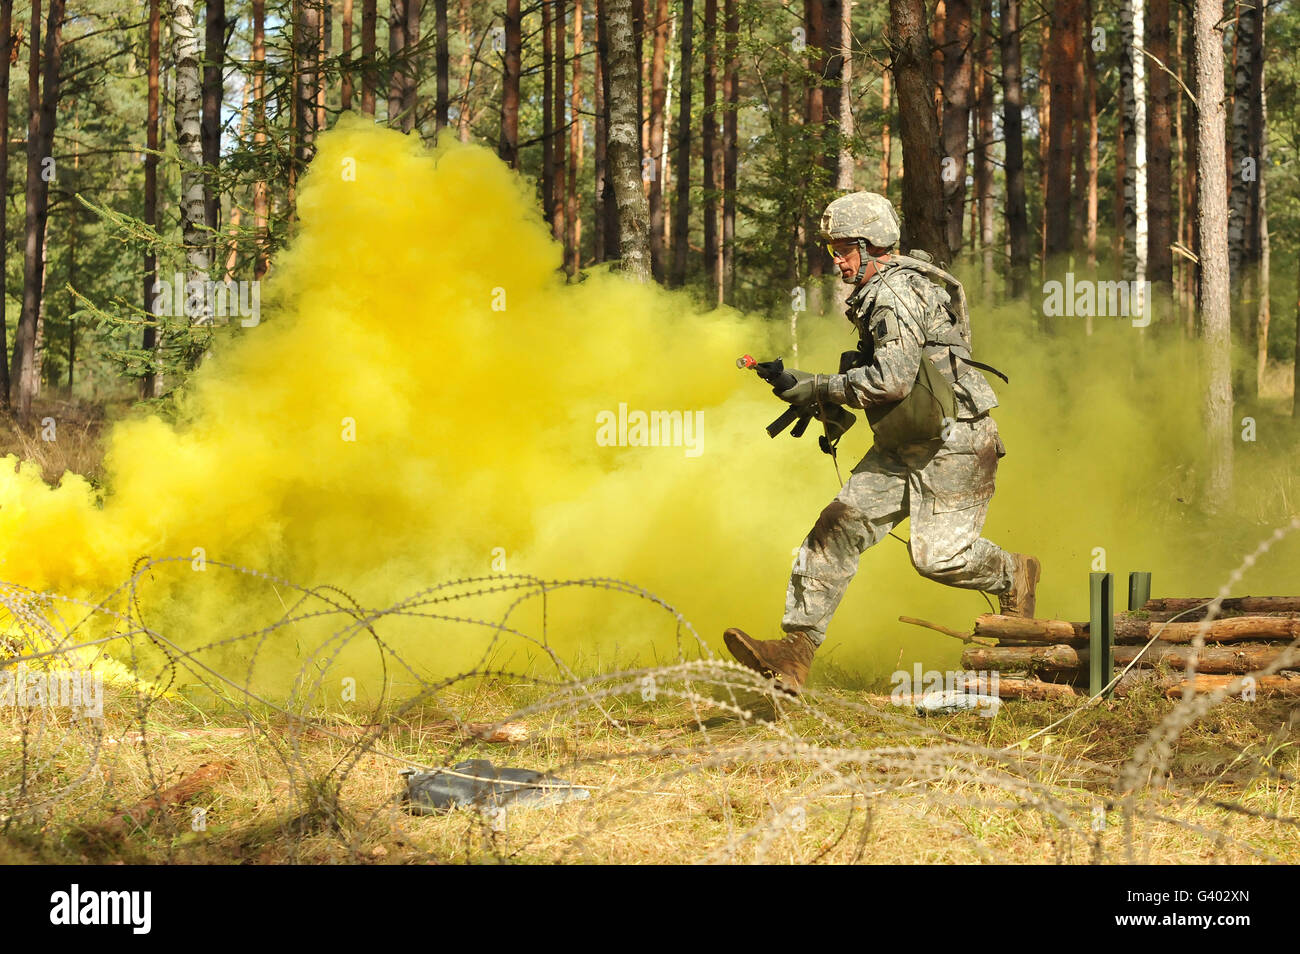 U.S. Army soldier moves through an obstacle in Grafenwoehr, Germany. - Stock Image